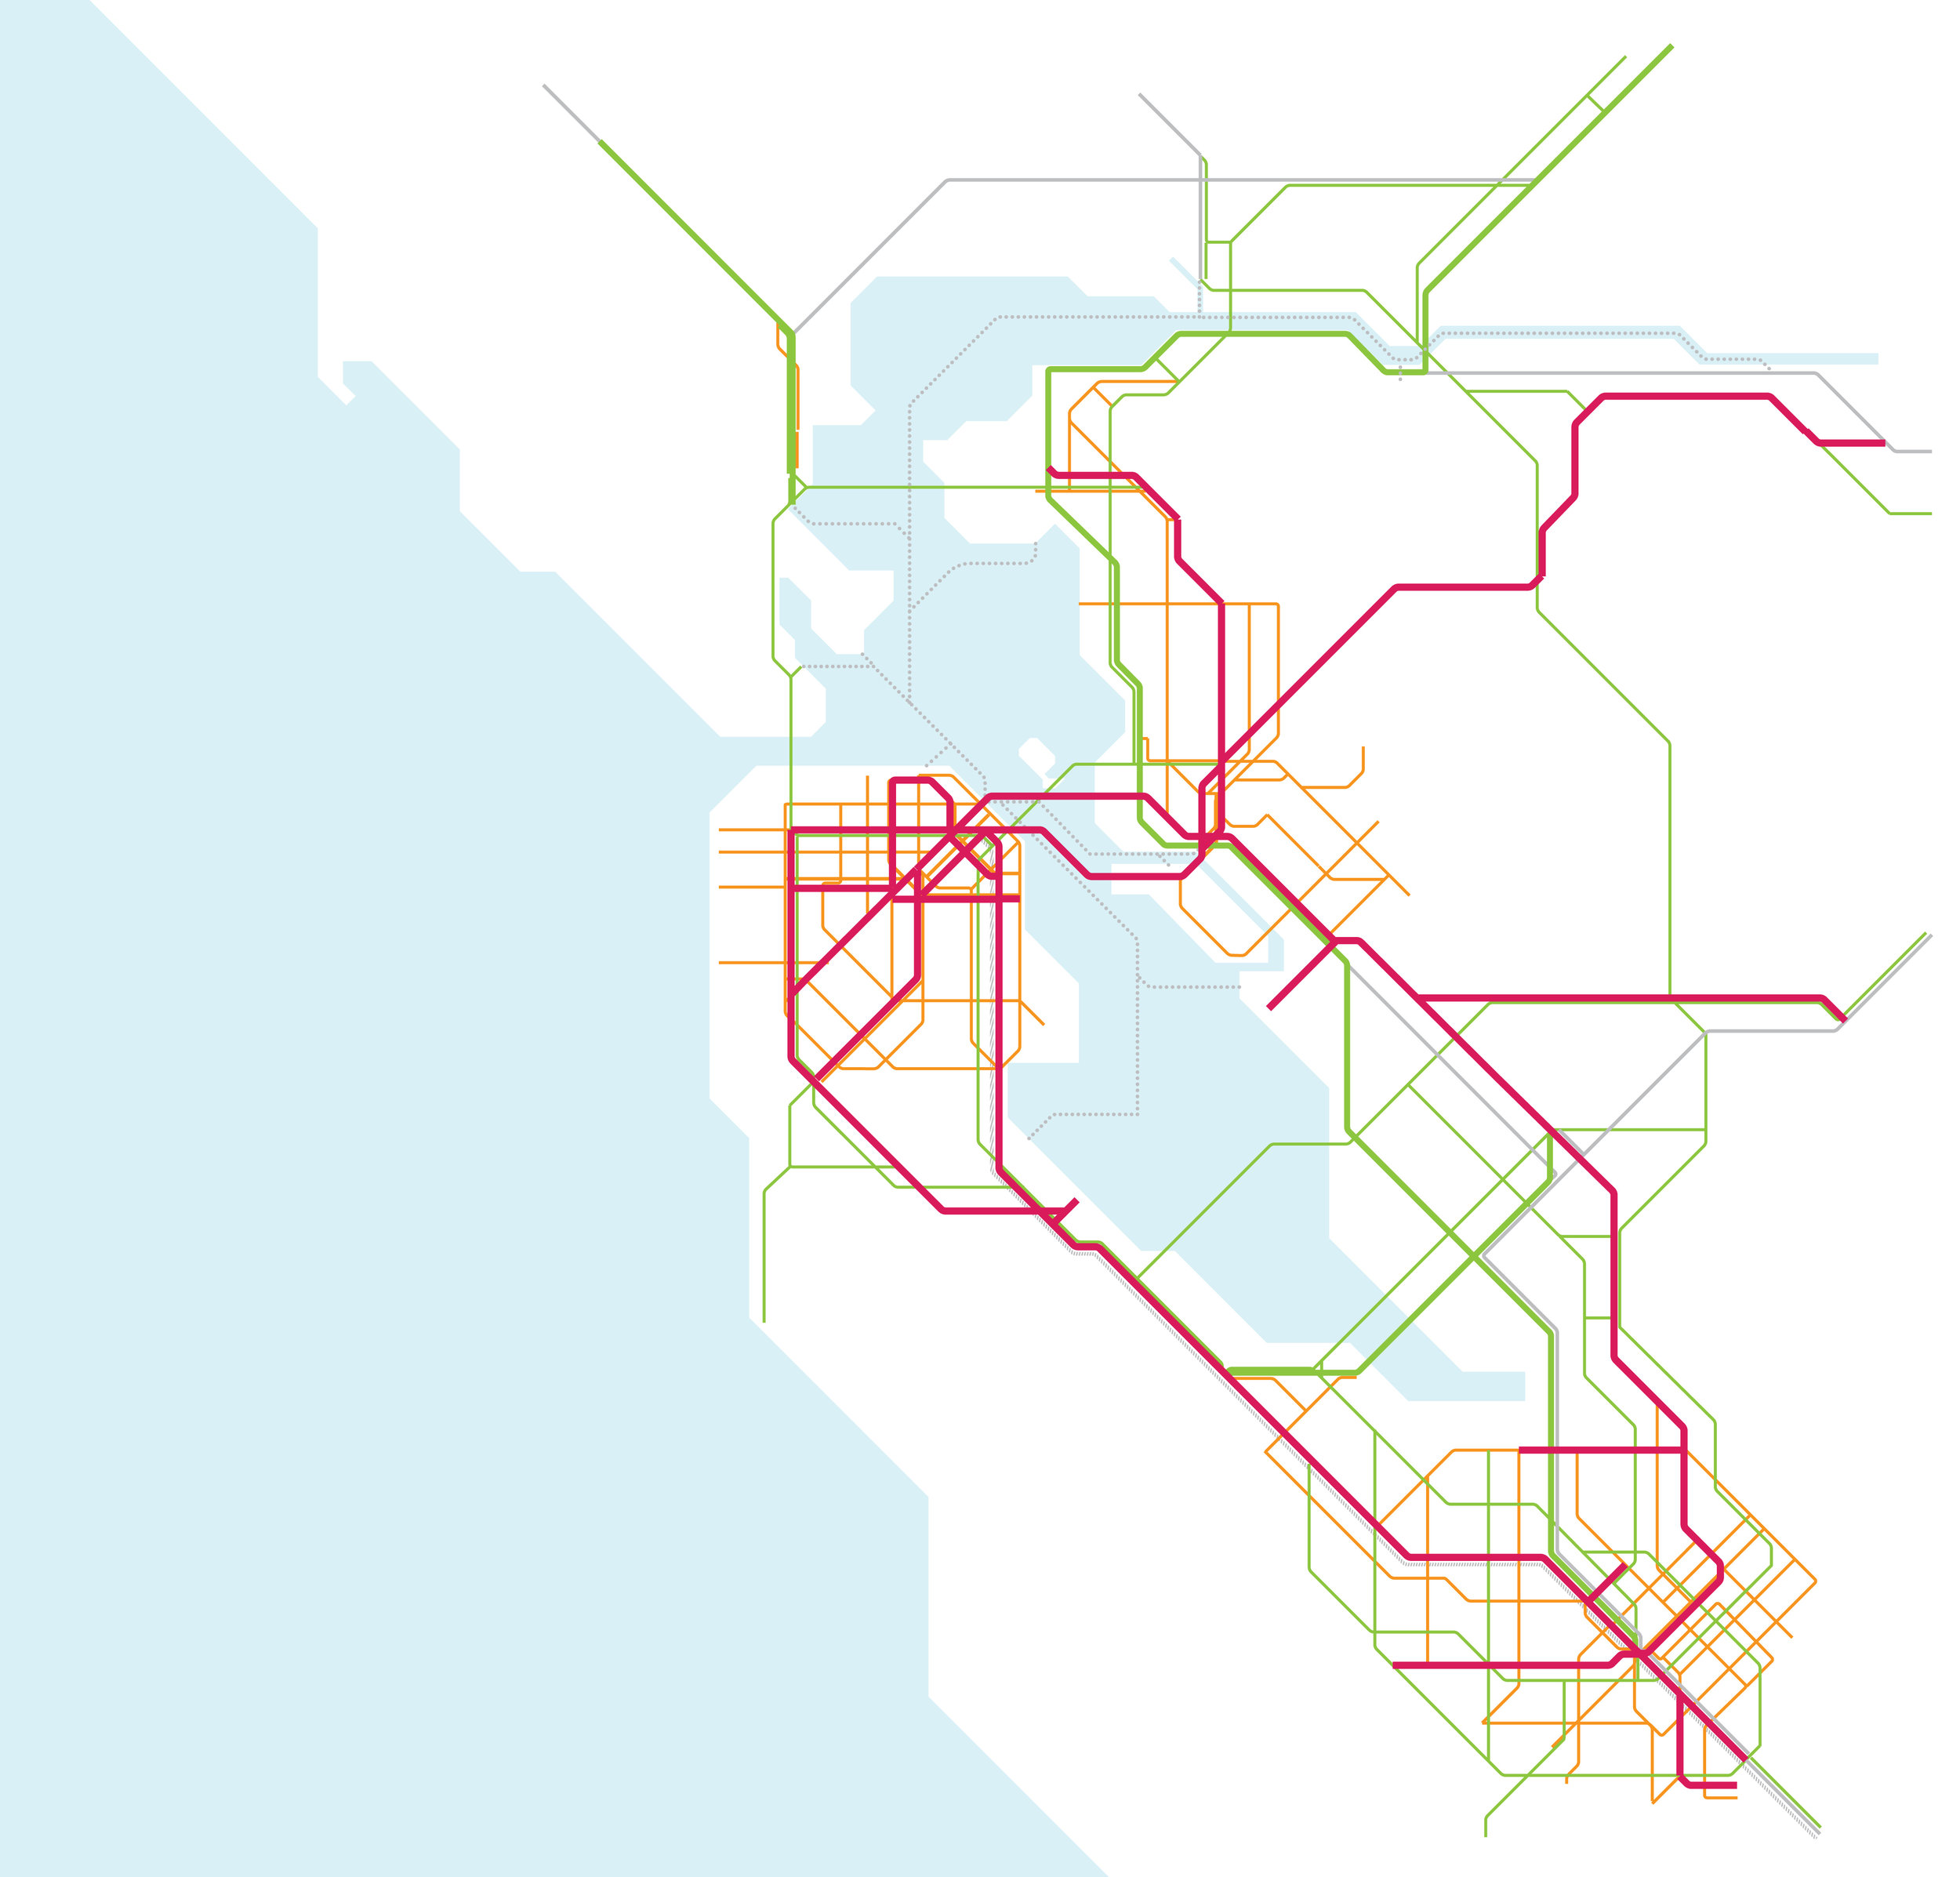 Introduce a regional express bus network; upgrade service on commuter rail lines to create a regional express rail network;